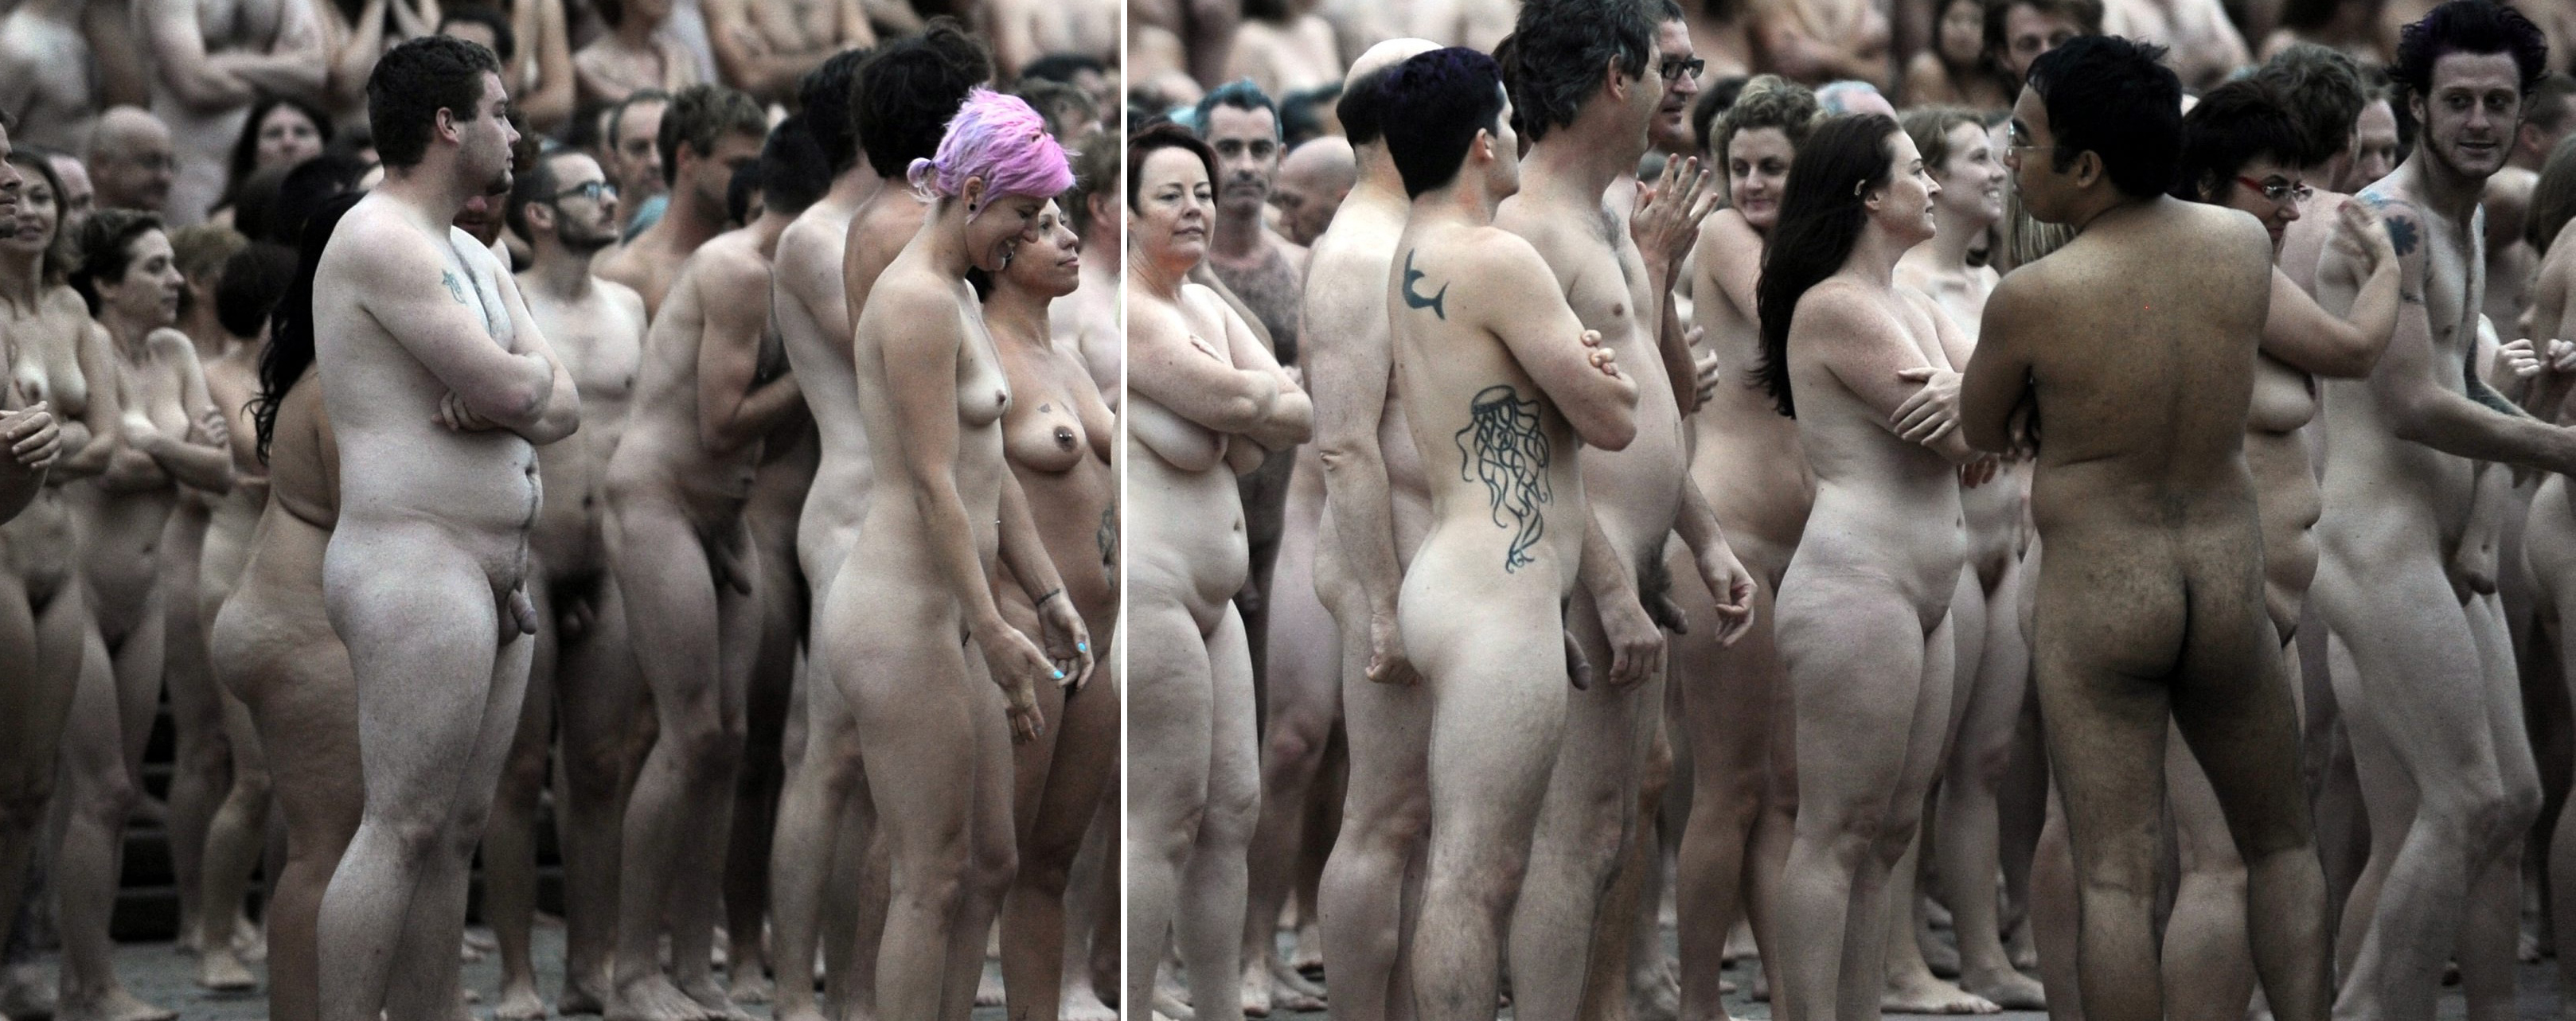 Naked people haveing but sex, franks wildlife strip club